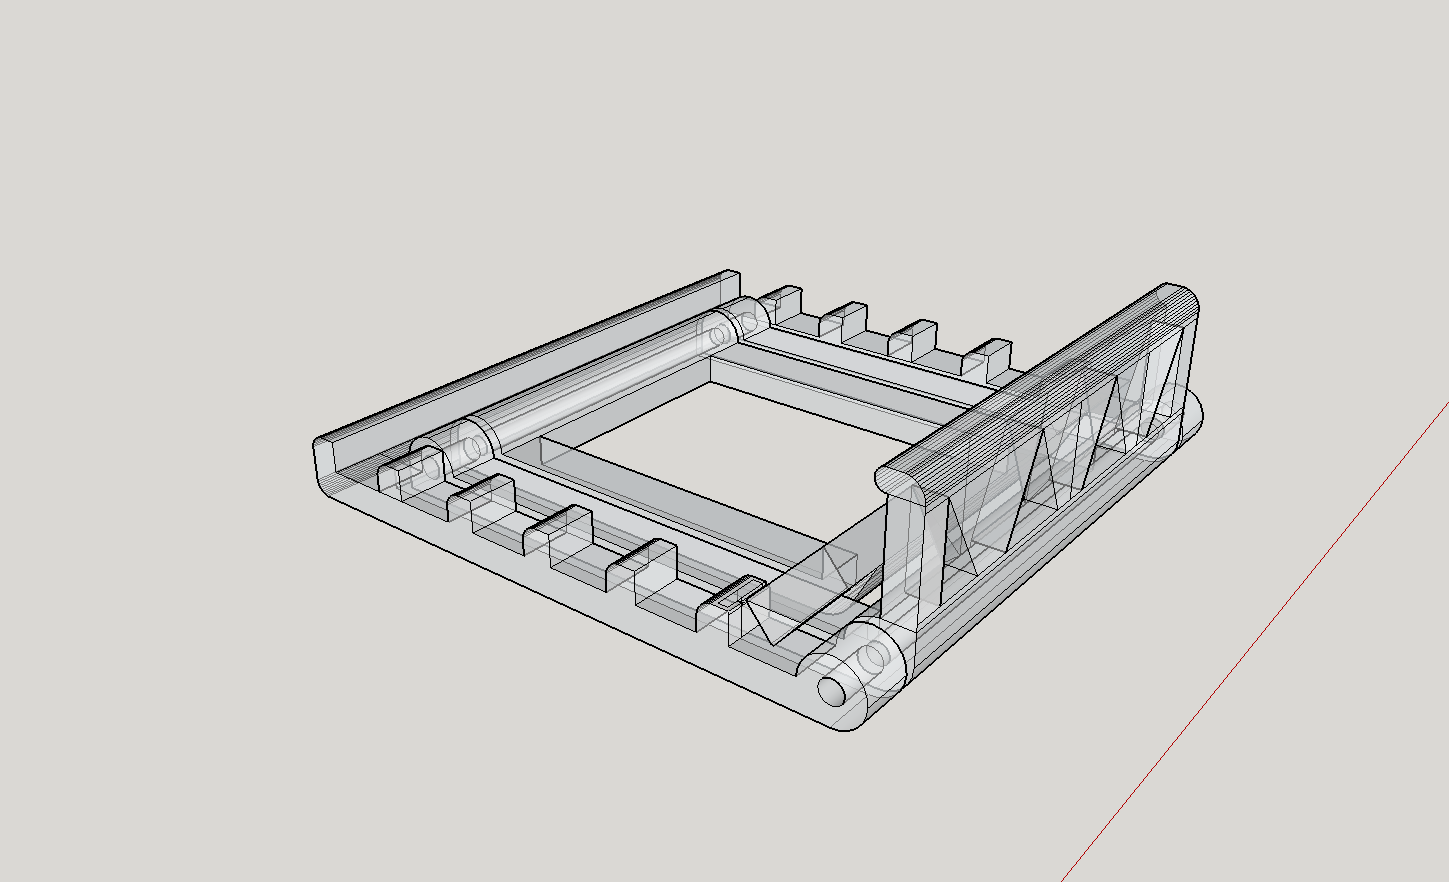 2018-04-30_17_17_30-Phone_stand_-_SketchUp_Make_2016.png Download free STL file Foldable phone stand • 3D printable template, Milan_Gajic